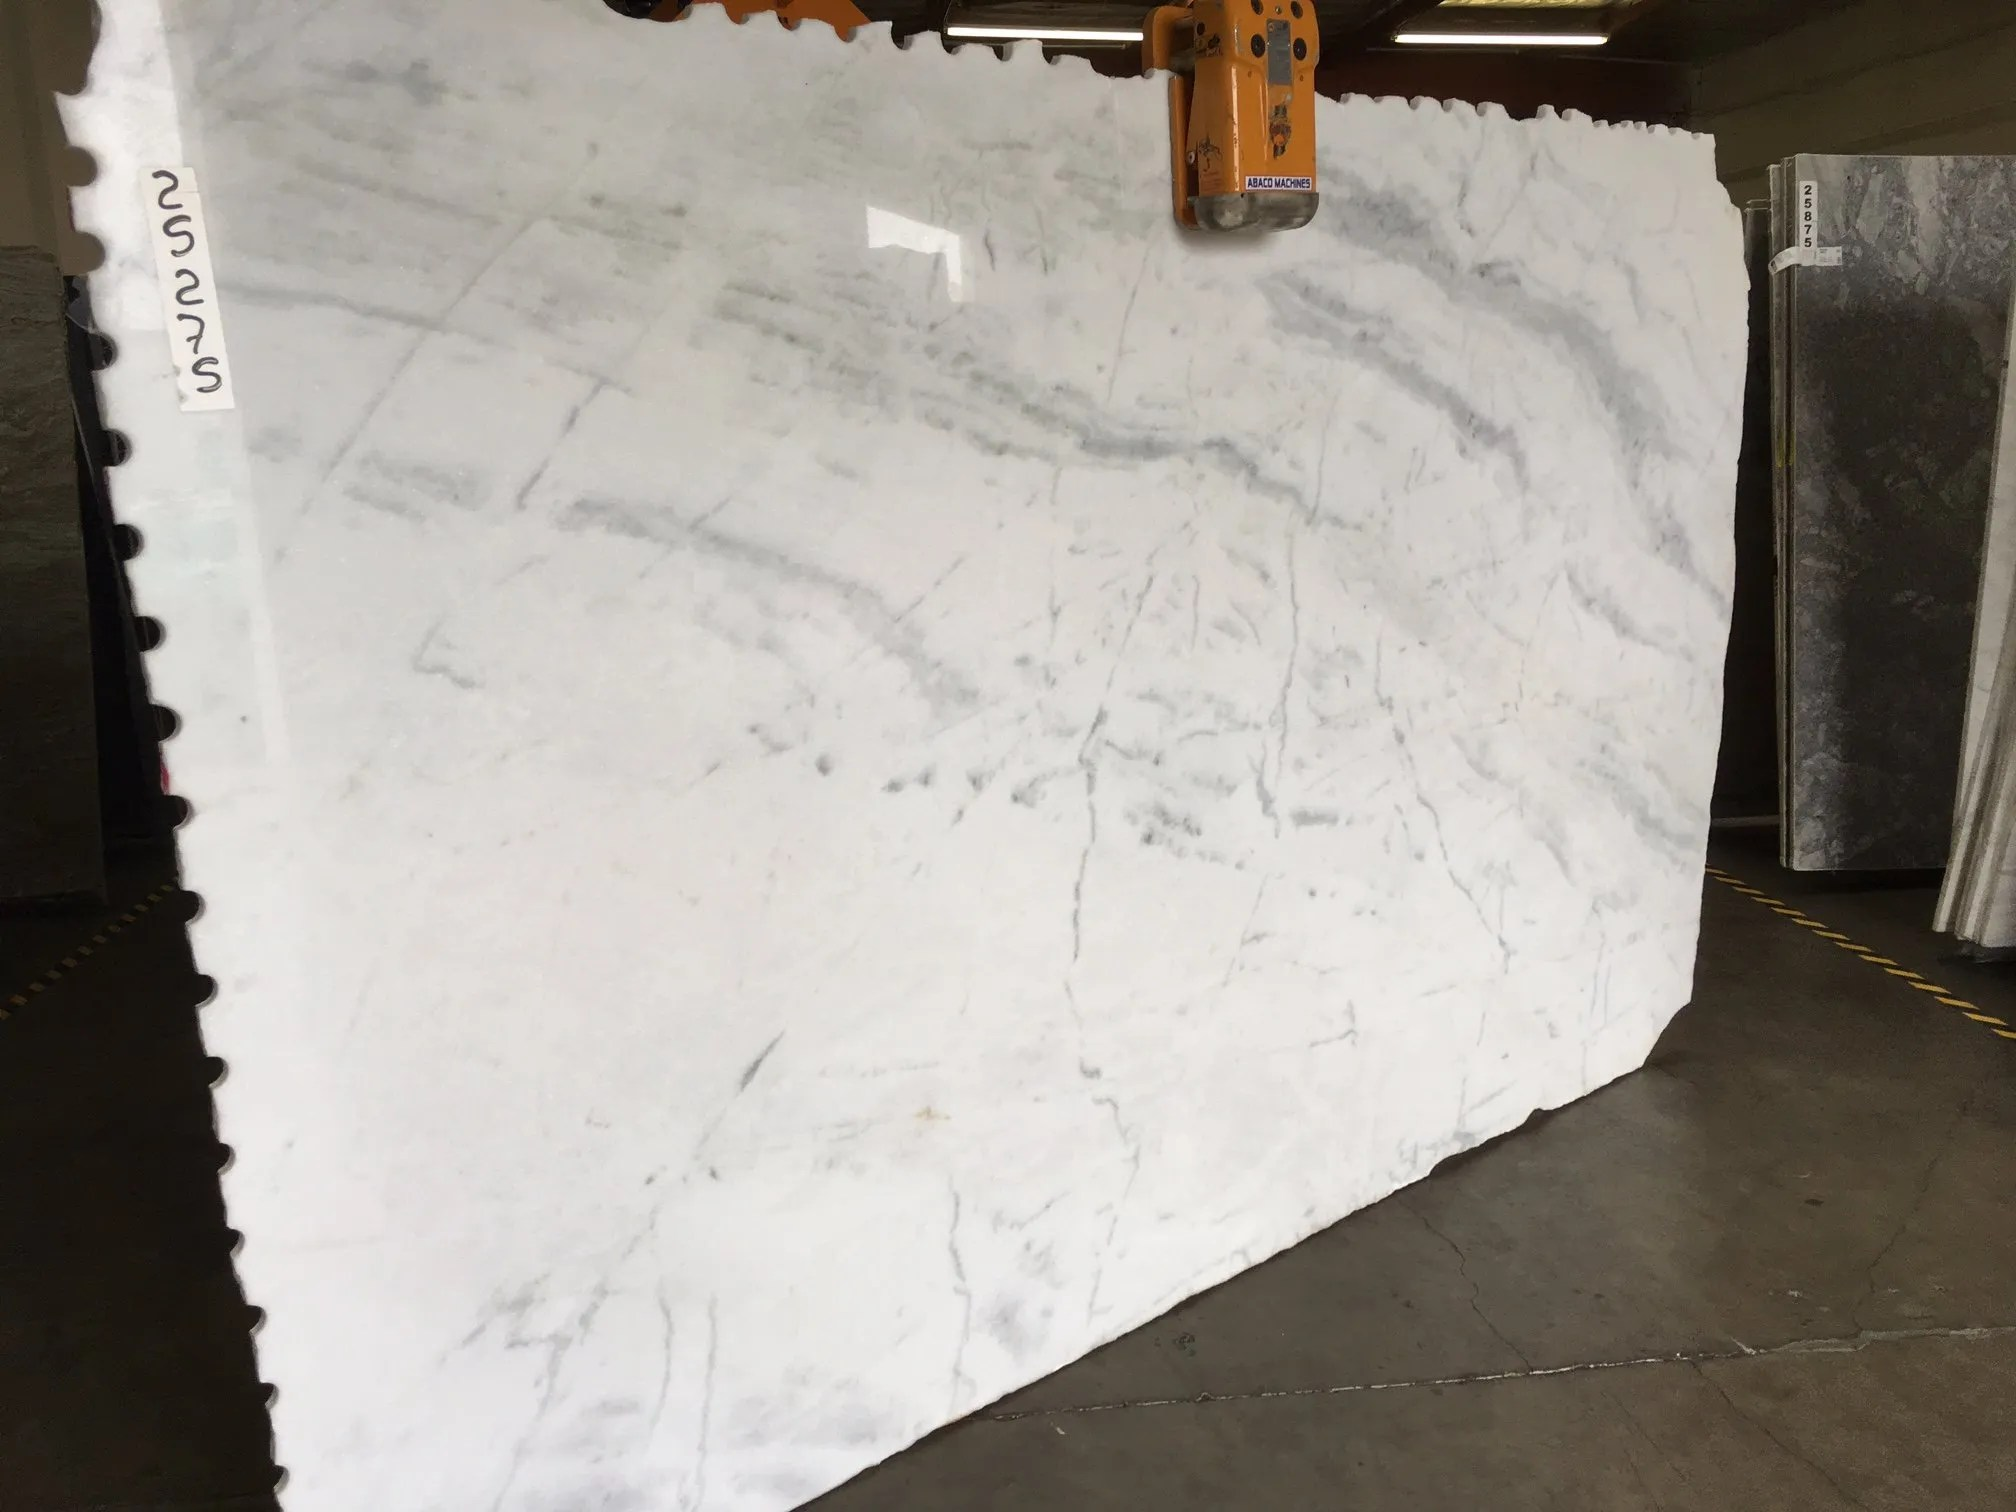 Calacatta Brazil Polished Marble Slab Trendy Surfaces